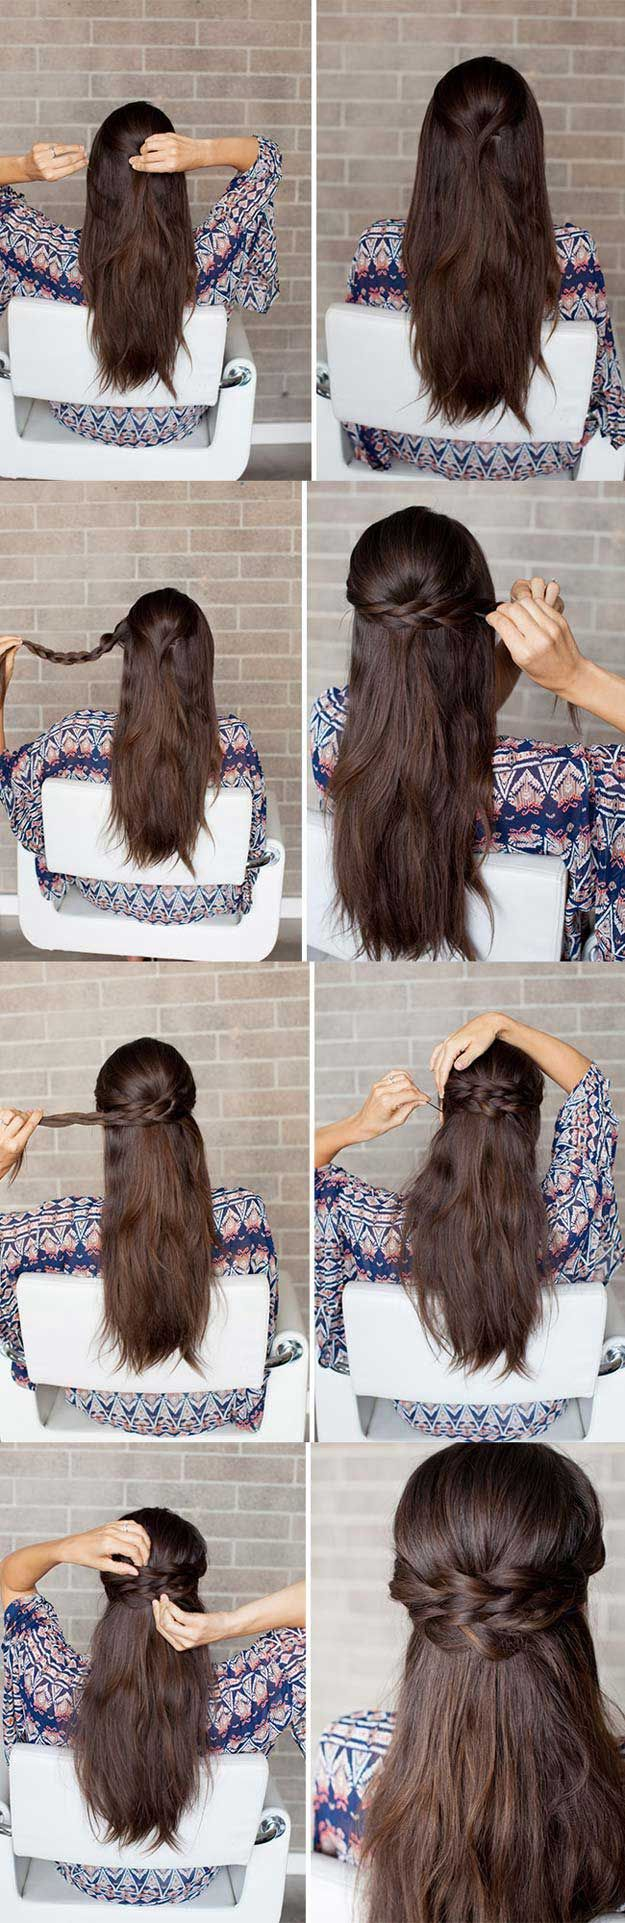 31 Amazing Half Up Half Down Hairstyles For Long Hair The Goddess In 2020 Down Hairstyles For Long Hair Braids For Long Hair Long Hair Styles